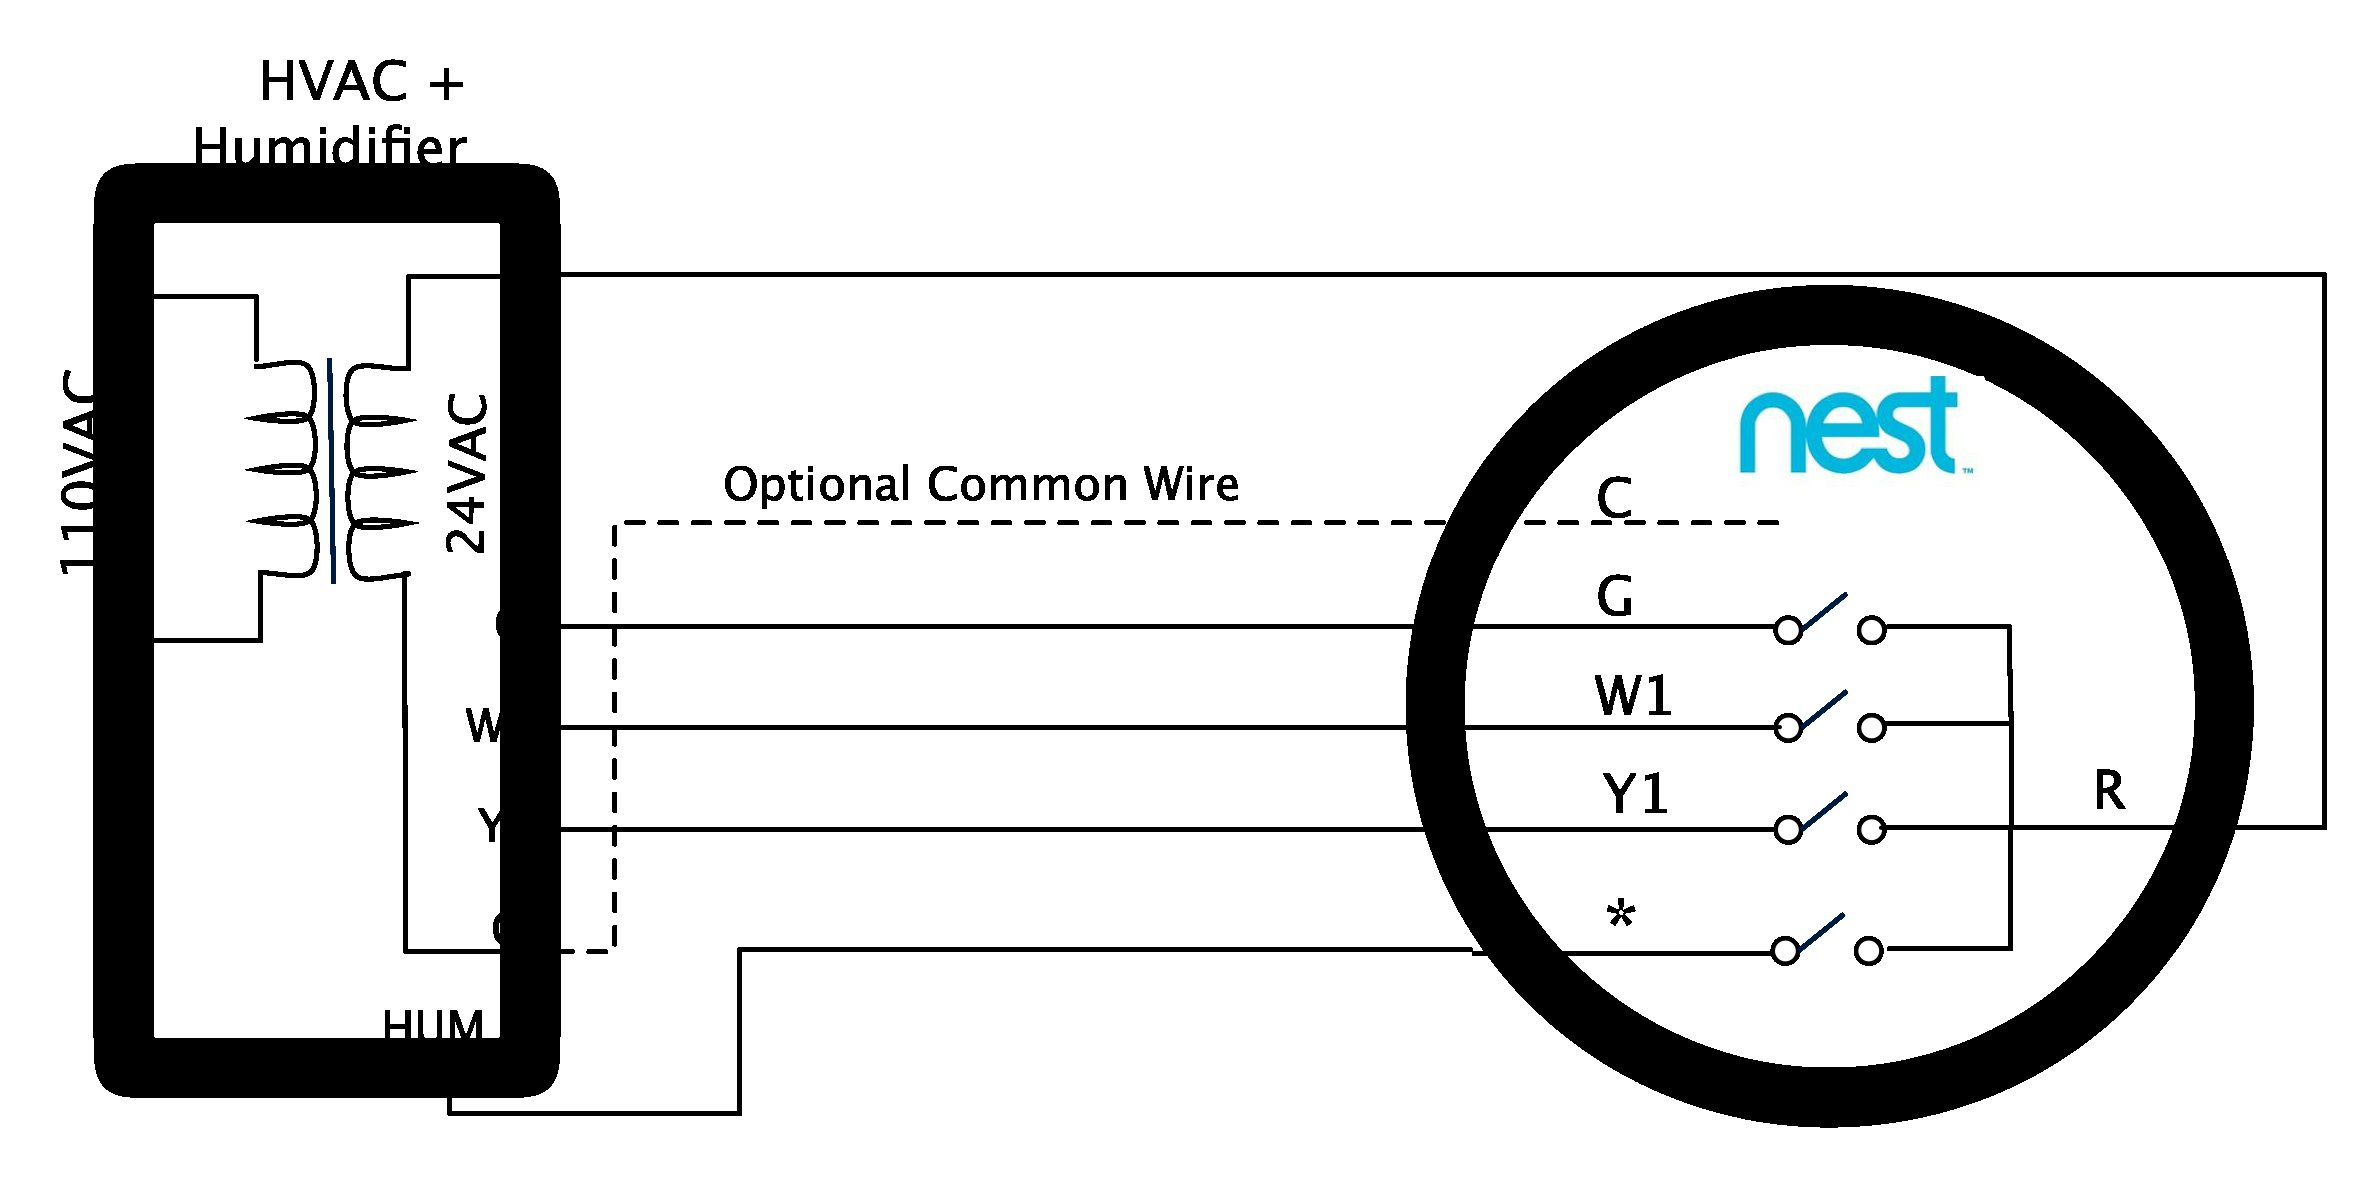 Phone Cable Wiring Diagram Also Ether Crossover Cable Wiring Diagram